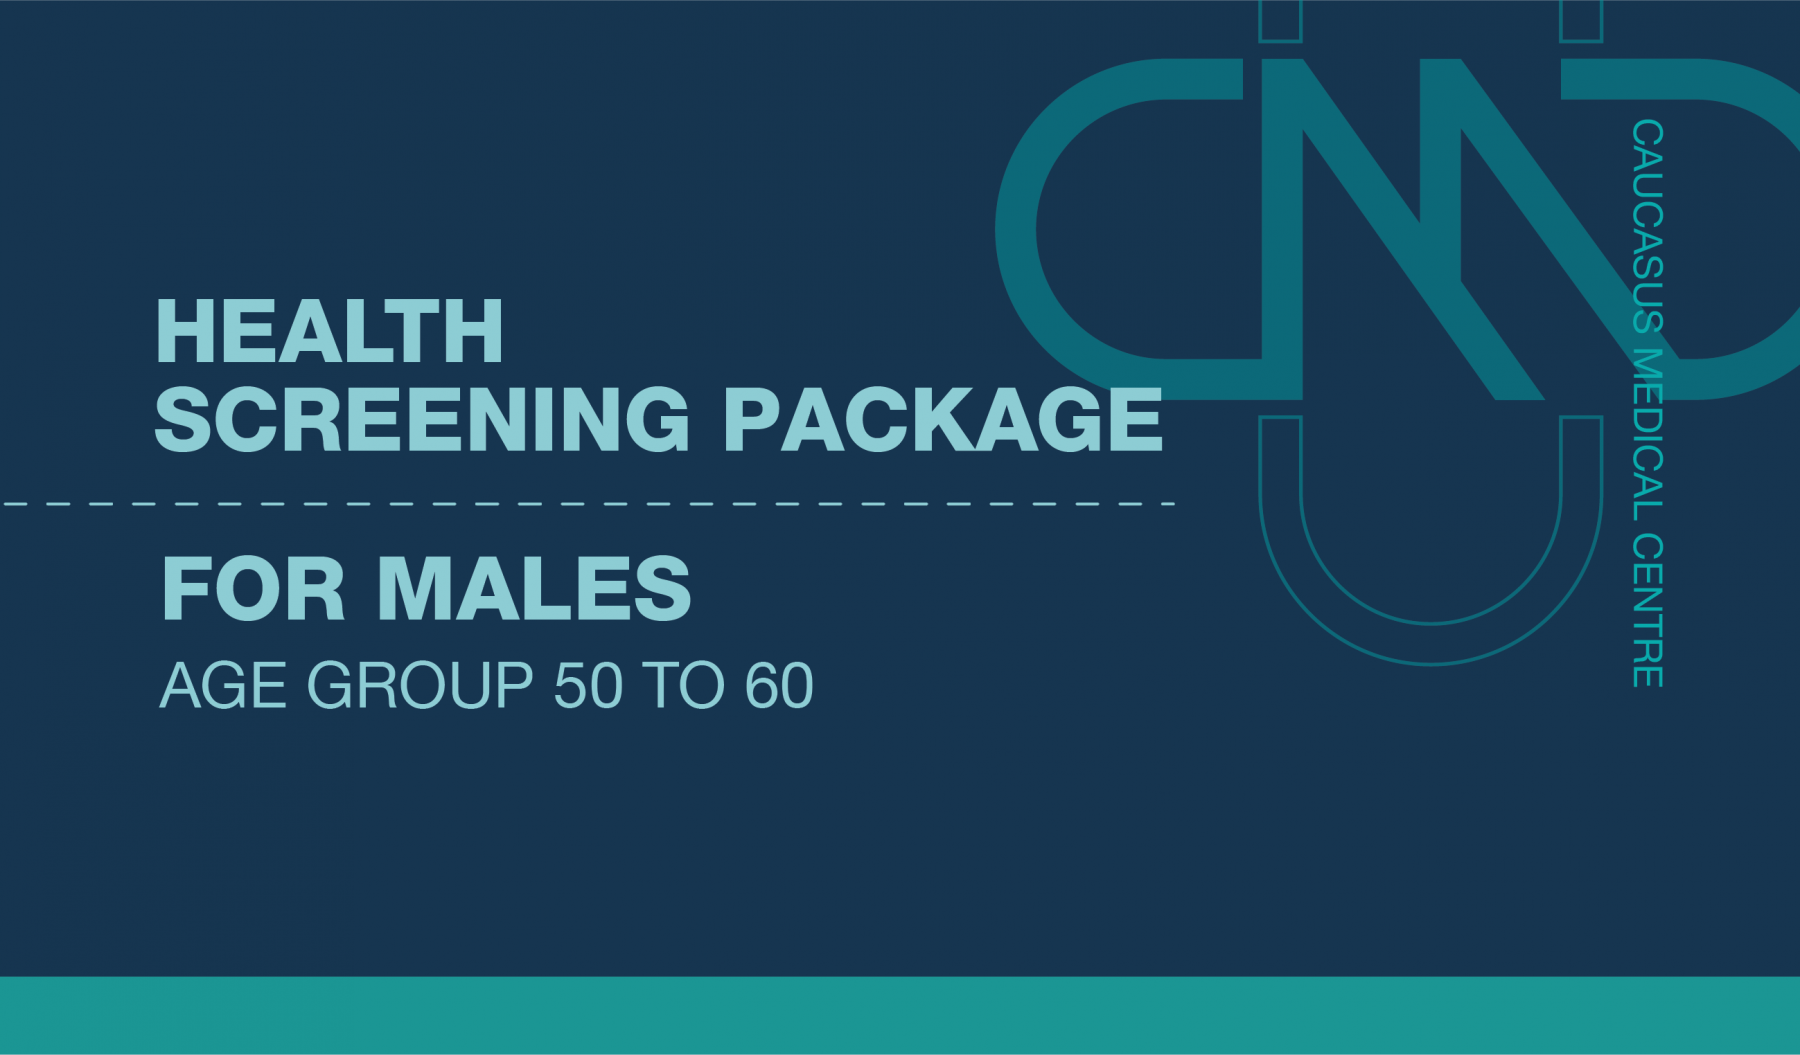 PREMIUM HEALTH SCREENING PACKAGE FOR MALES AGE GROUP 50 TO 60